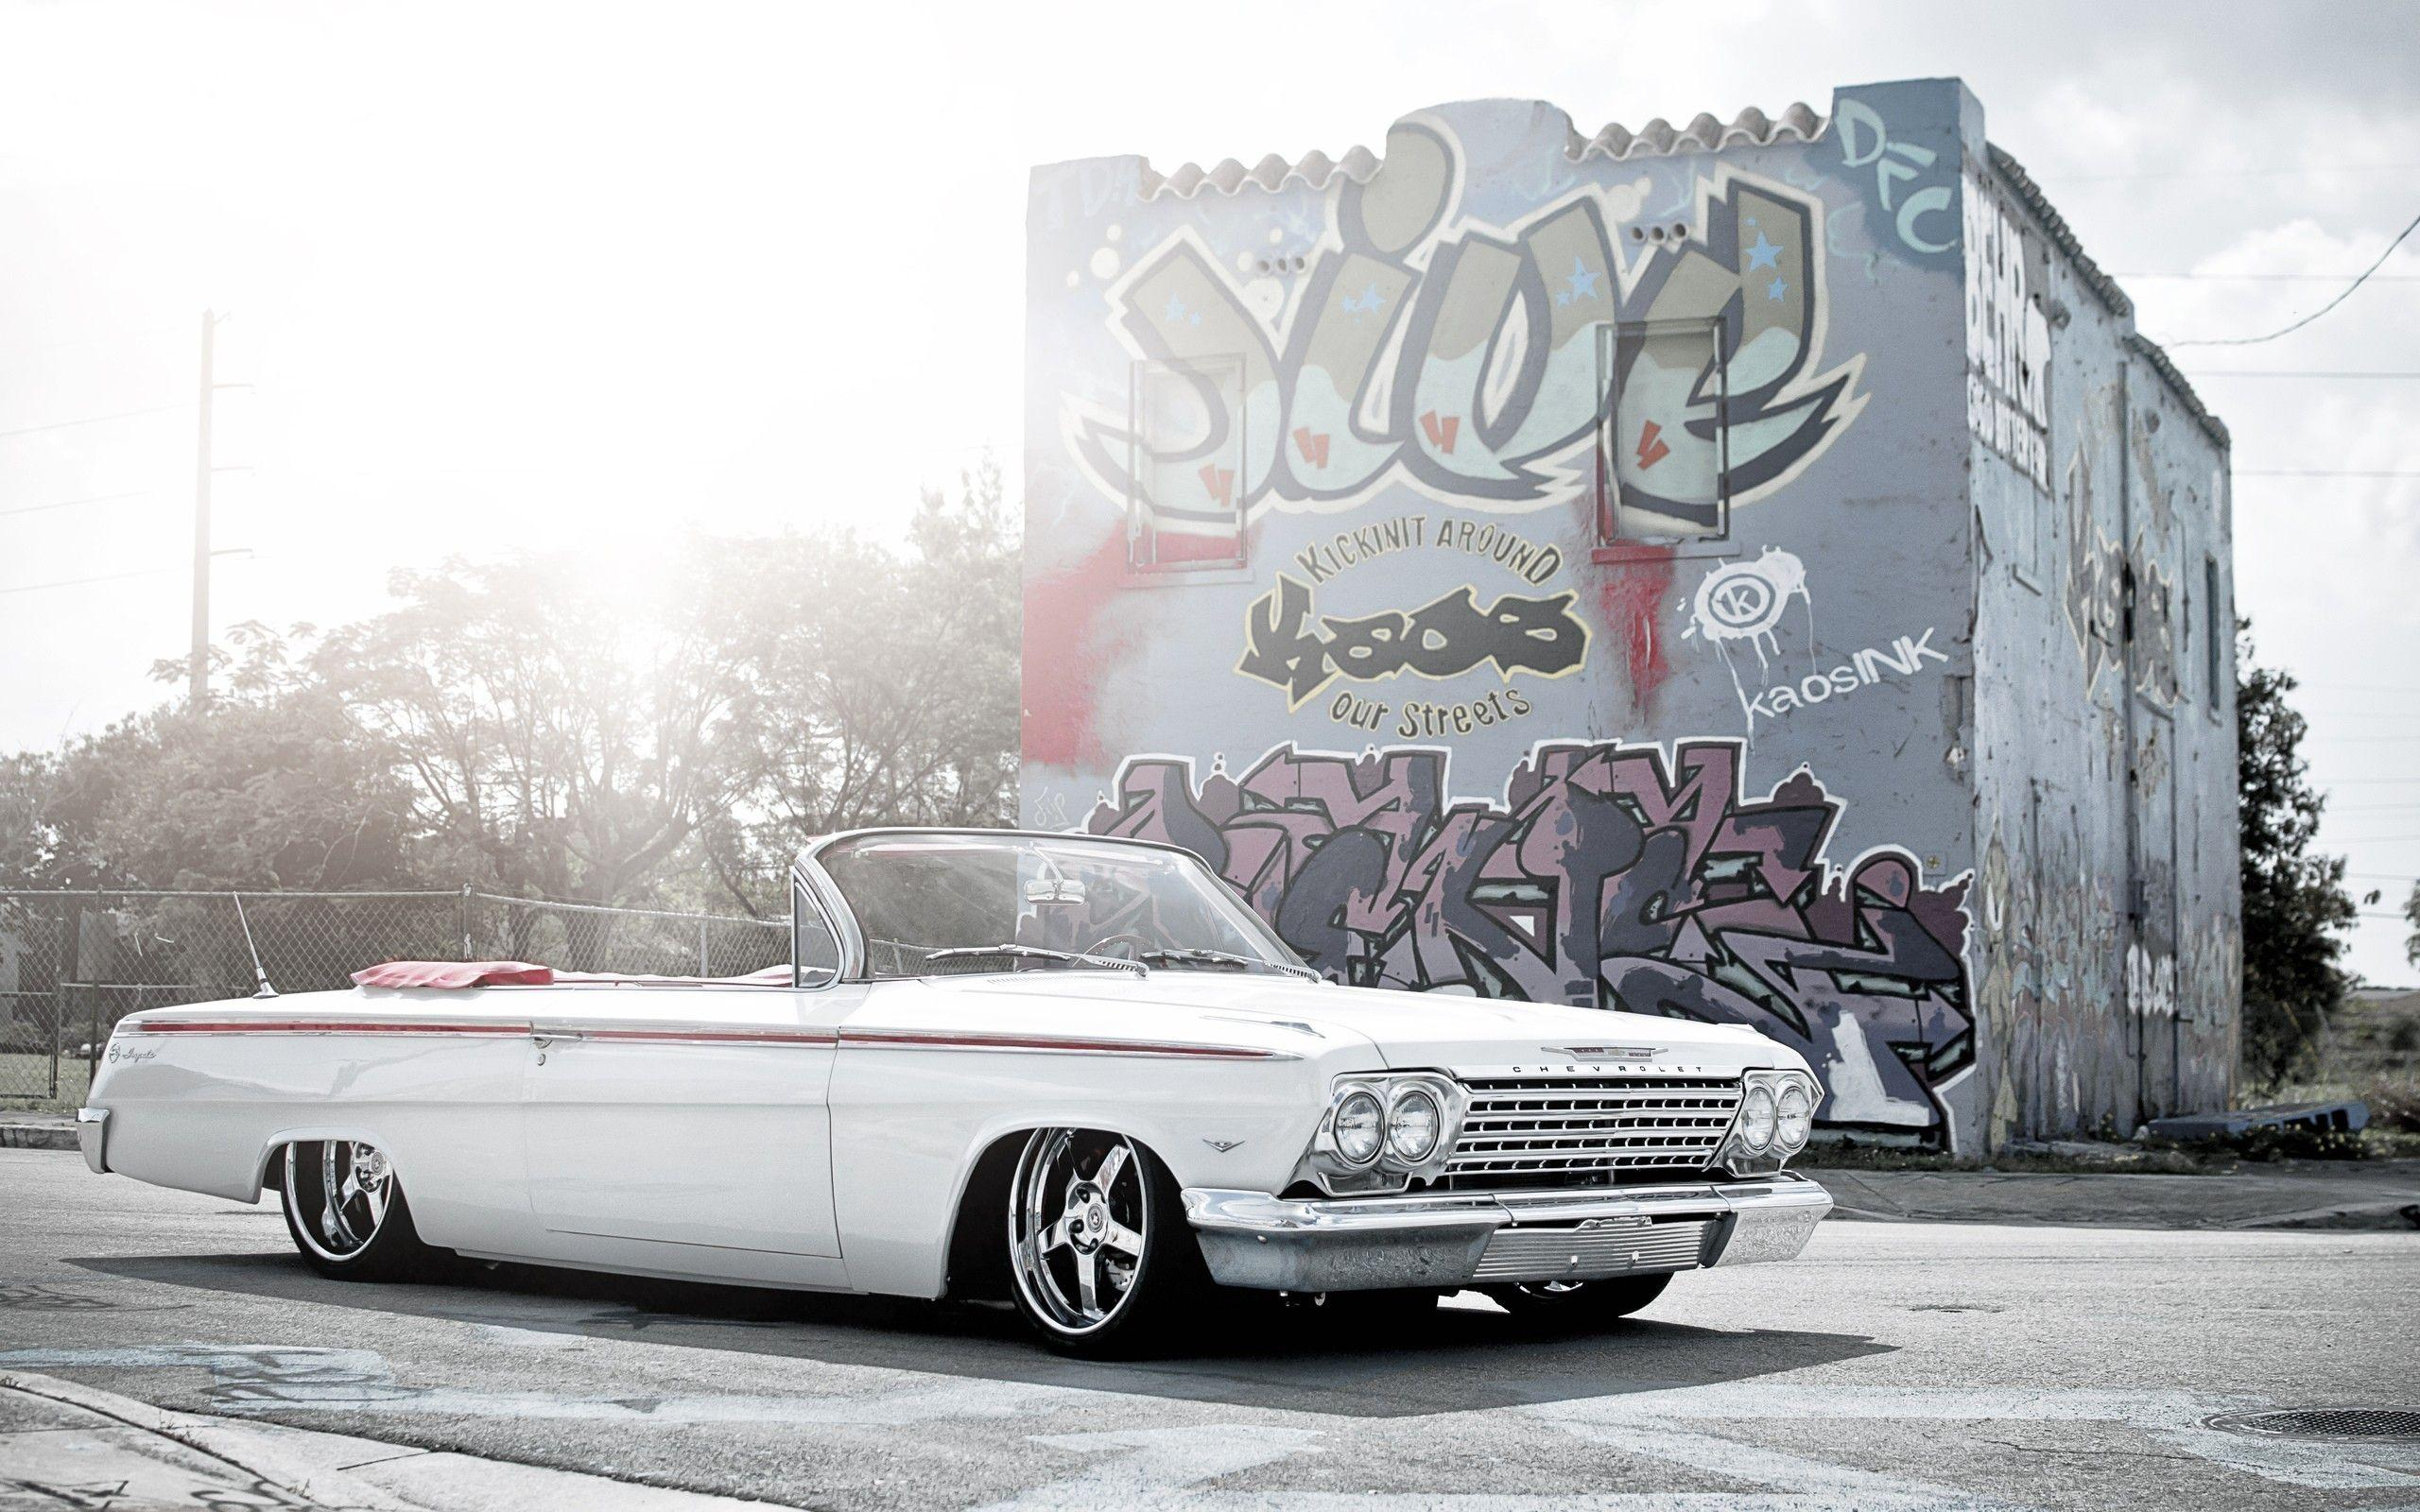 1964 Chevy Impala Lowrider Wallpapers ✓ Labzada Wallpapers